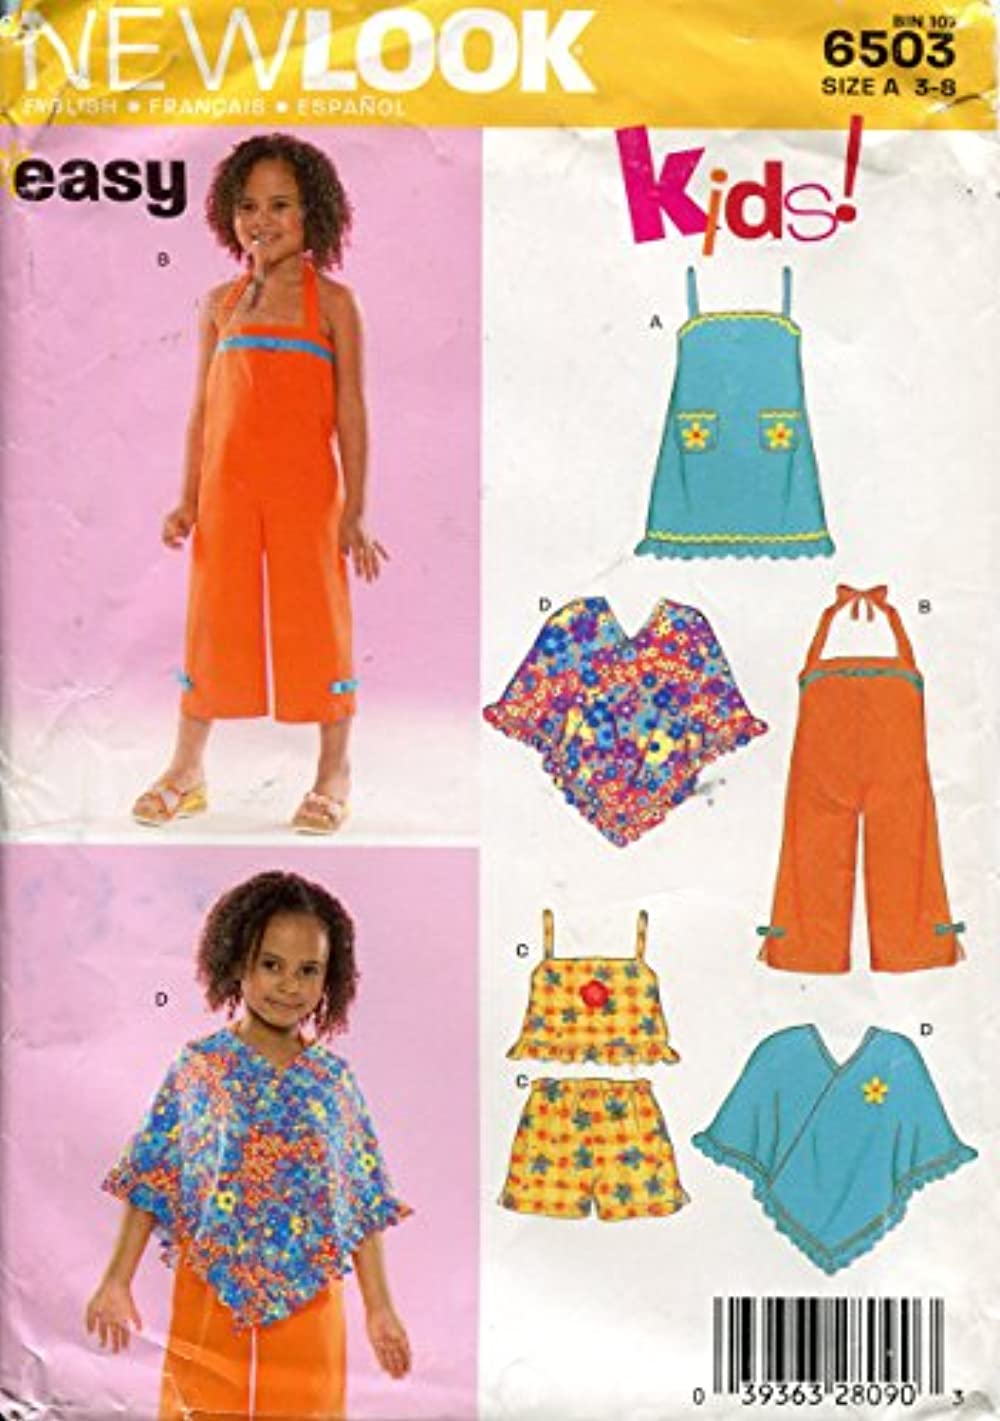 New Look for Kids Pattern 6503 Girls' Summer Tops, Overalls, Shorts, Dress, Poncho, Size A (3-8)